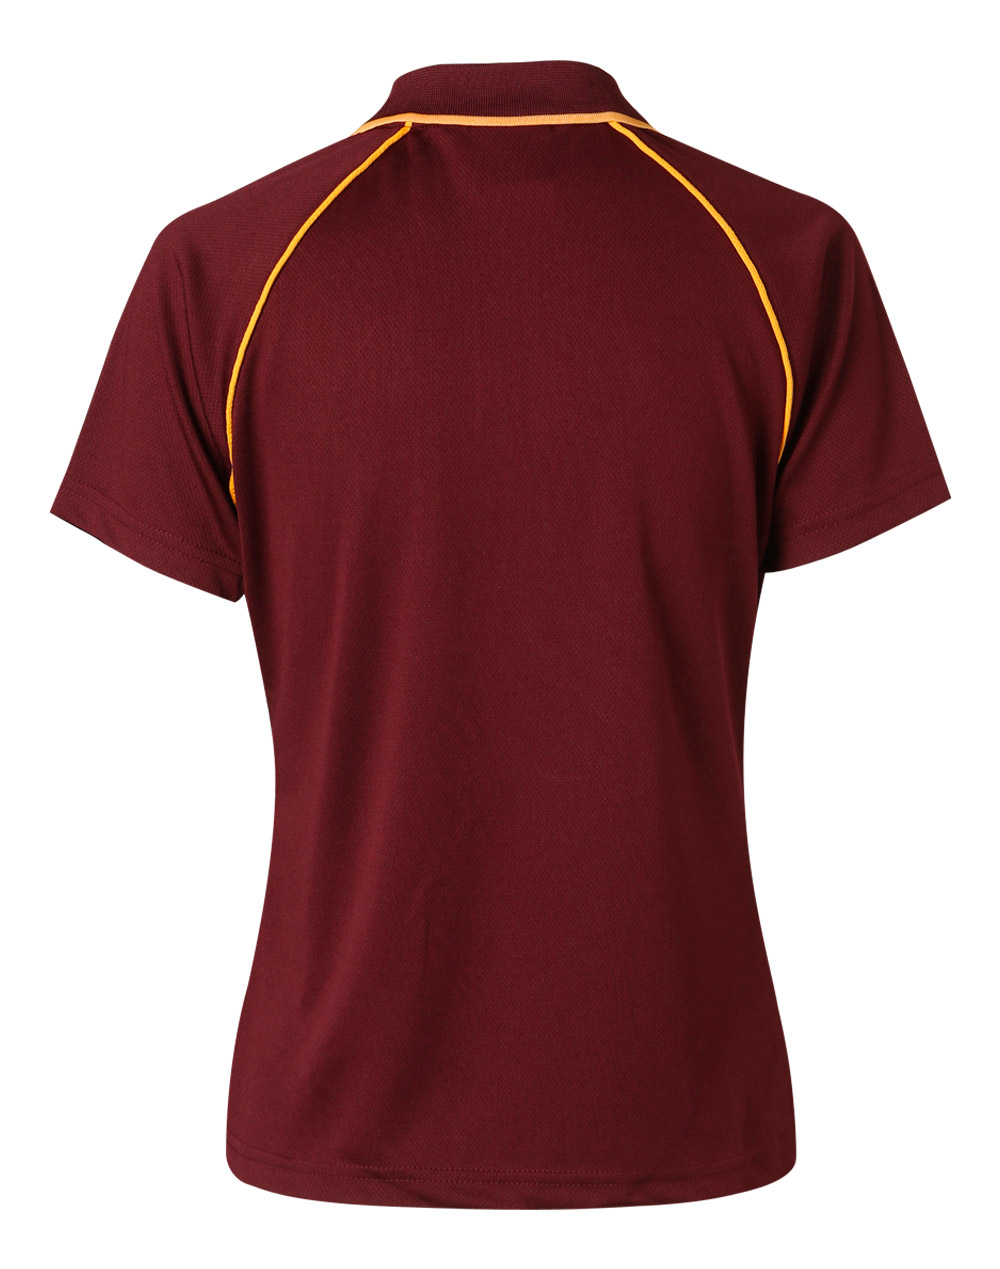 https://s3-ap-southeast-1.amazonaws.com/ws-imgs/POLOSHIRTS/PS19_Maroon.Gold_Back.jpg